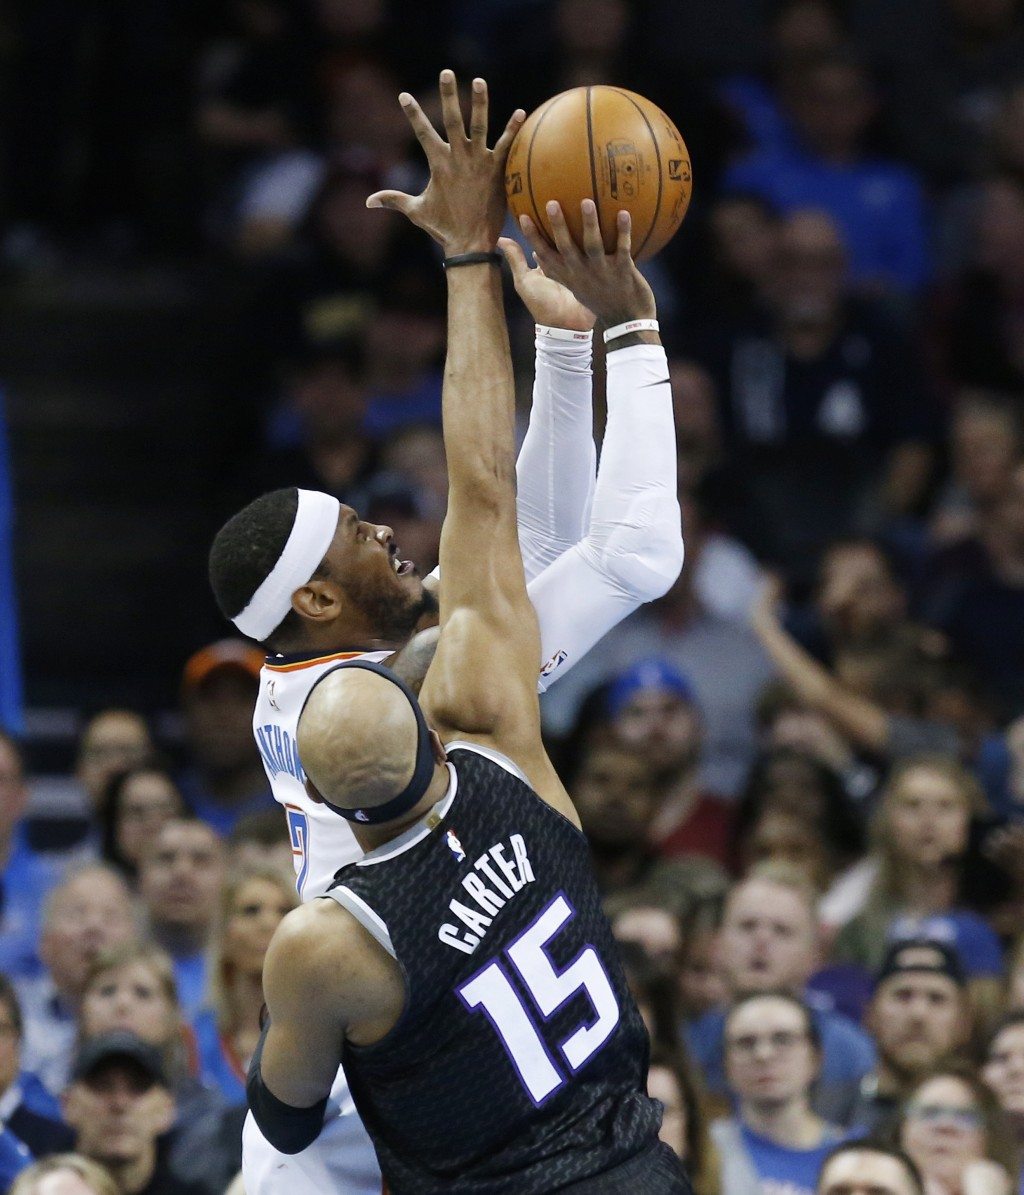 Oklahoma City Thunder forward Carmelo Anthony, top, is fouled by Sacramento Kings guard Vince Carter (15) as he shoots in the first half of an NBA bas